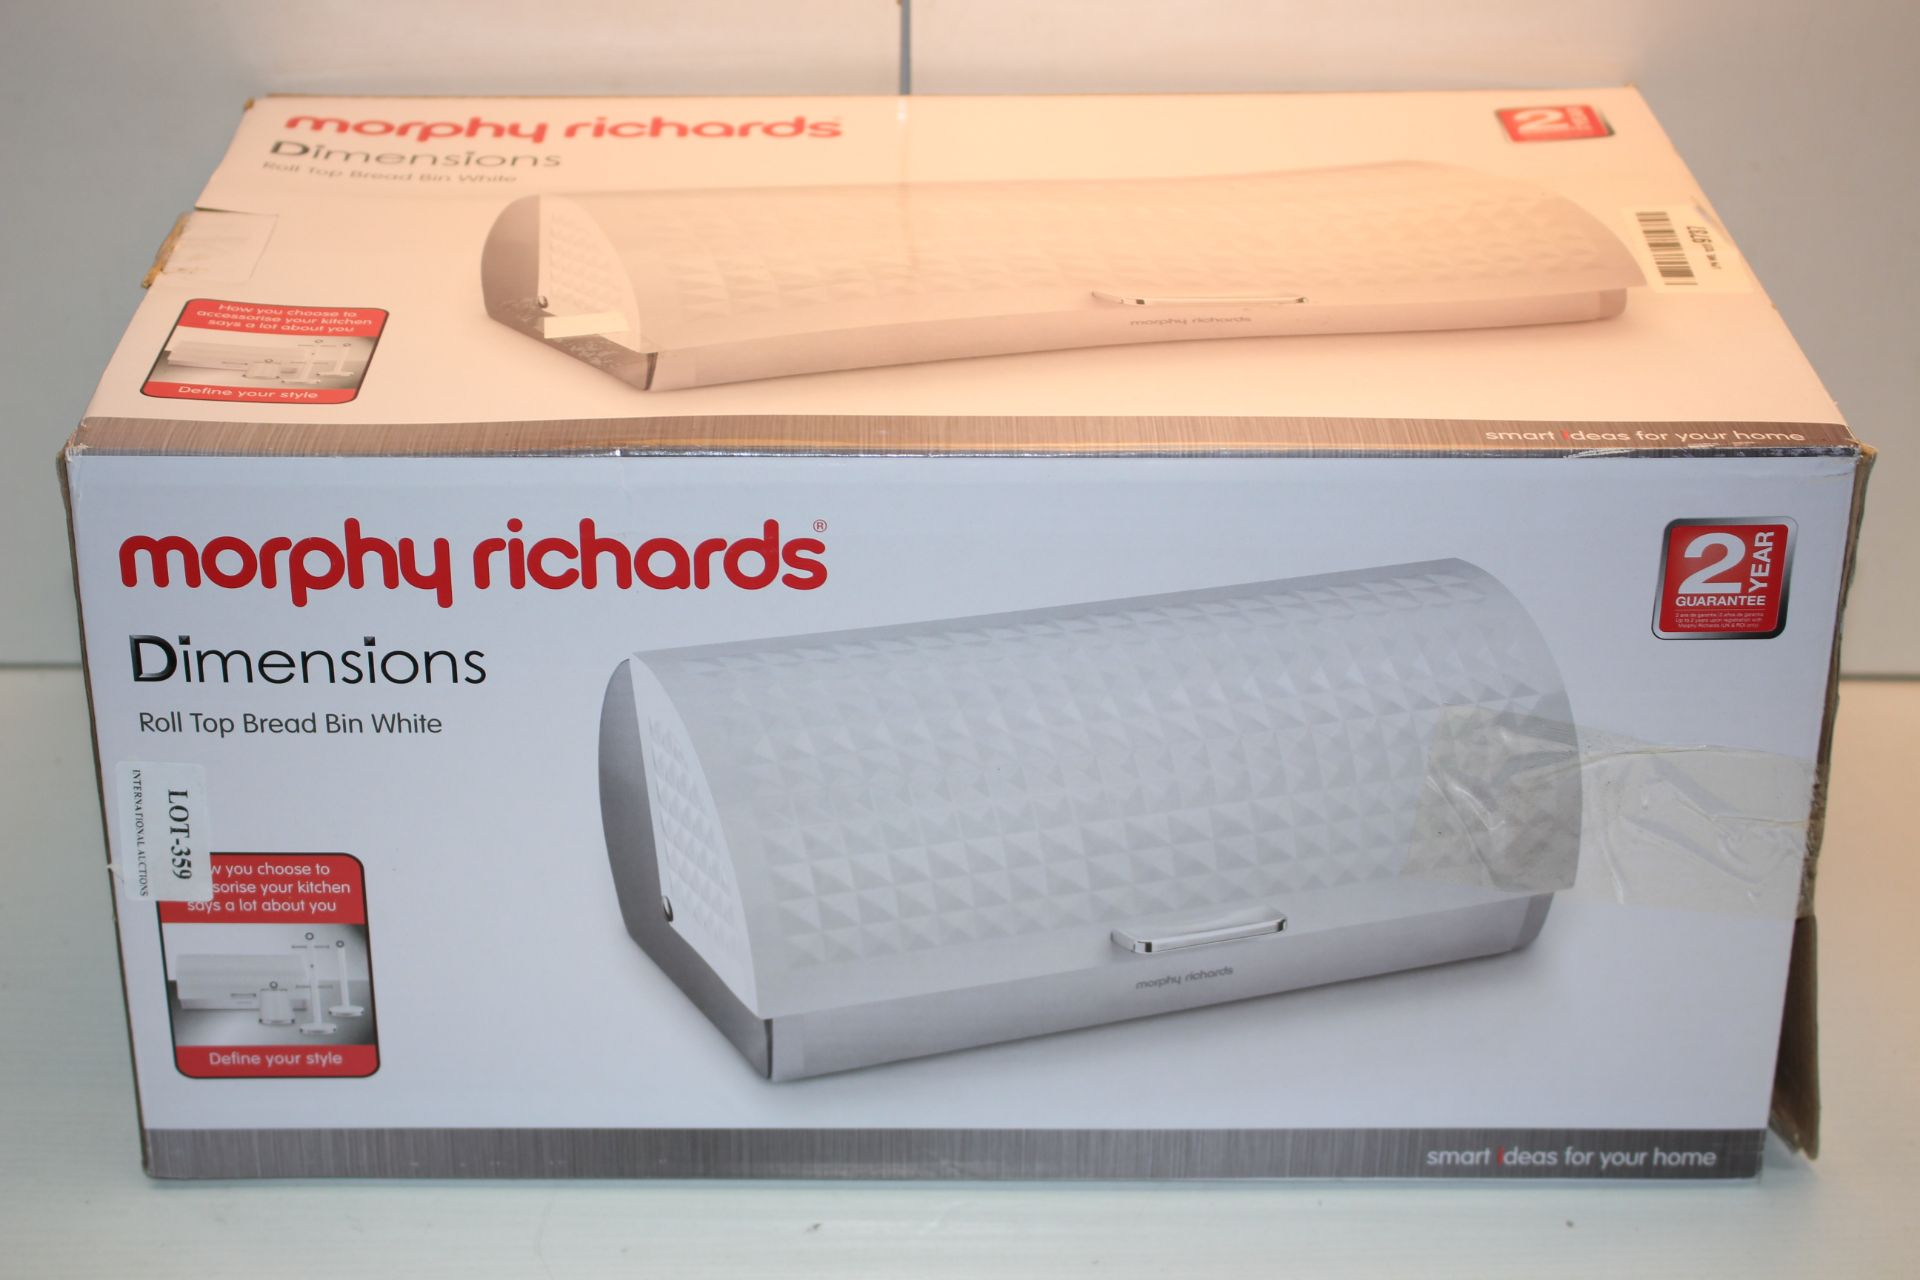 BOXED MORPHY RICHARDS DIMENSIONS ROLL TOP BREAD BIN WHITE RRP £29.99Condition ReportAppraisal